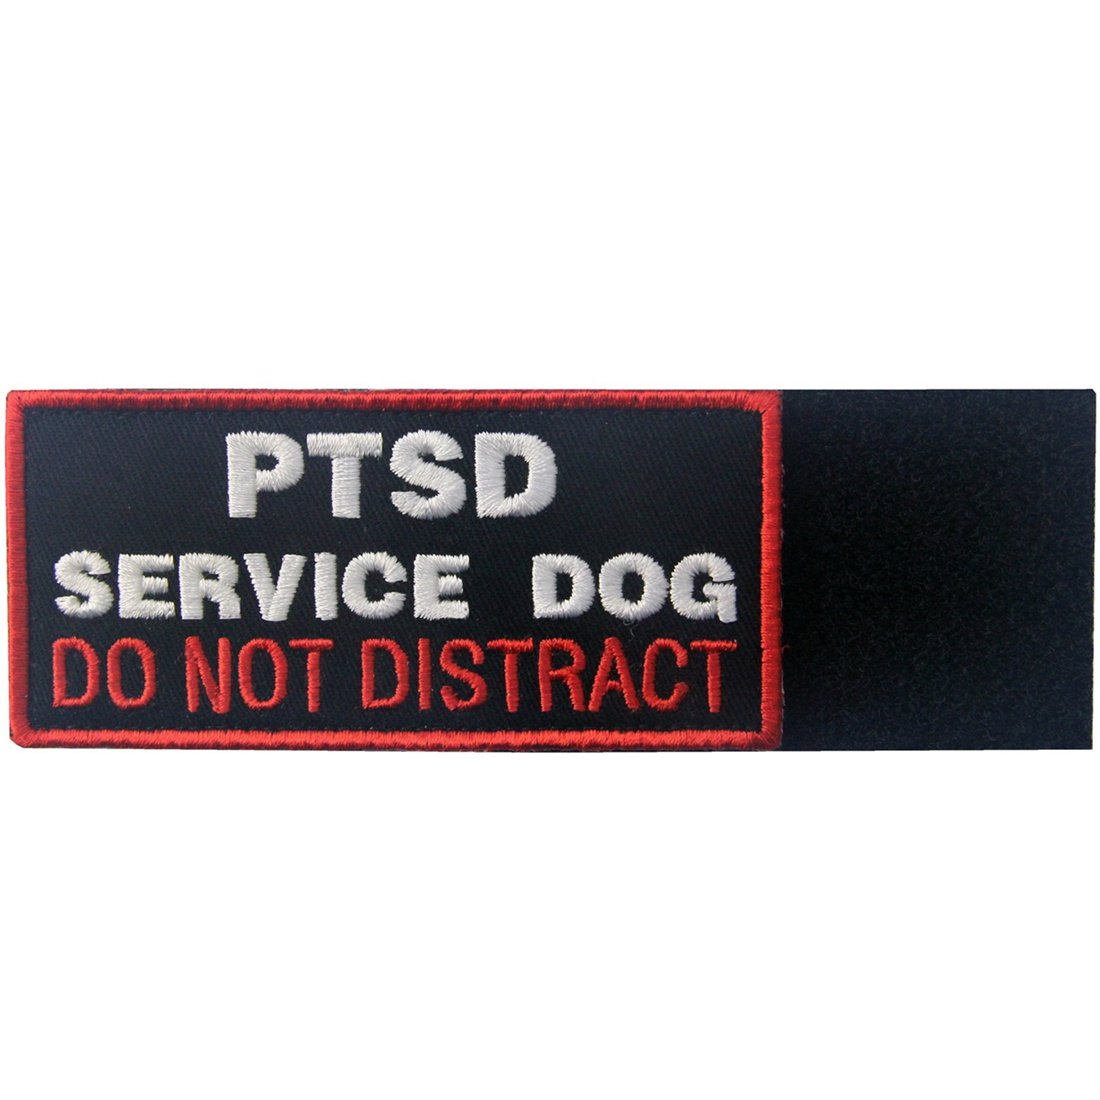 Service Dog Working Do Not Touch Vests//Harnesses Emblem Embroidered Fastener Hook /& Loop Patch